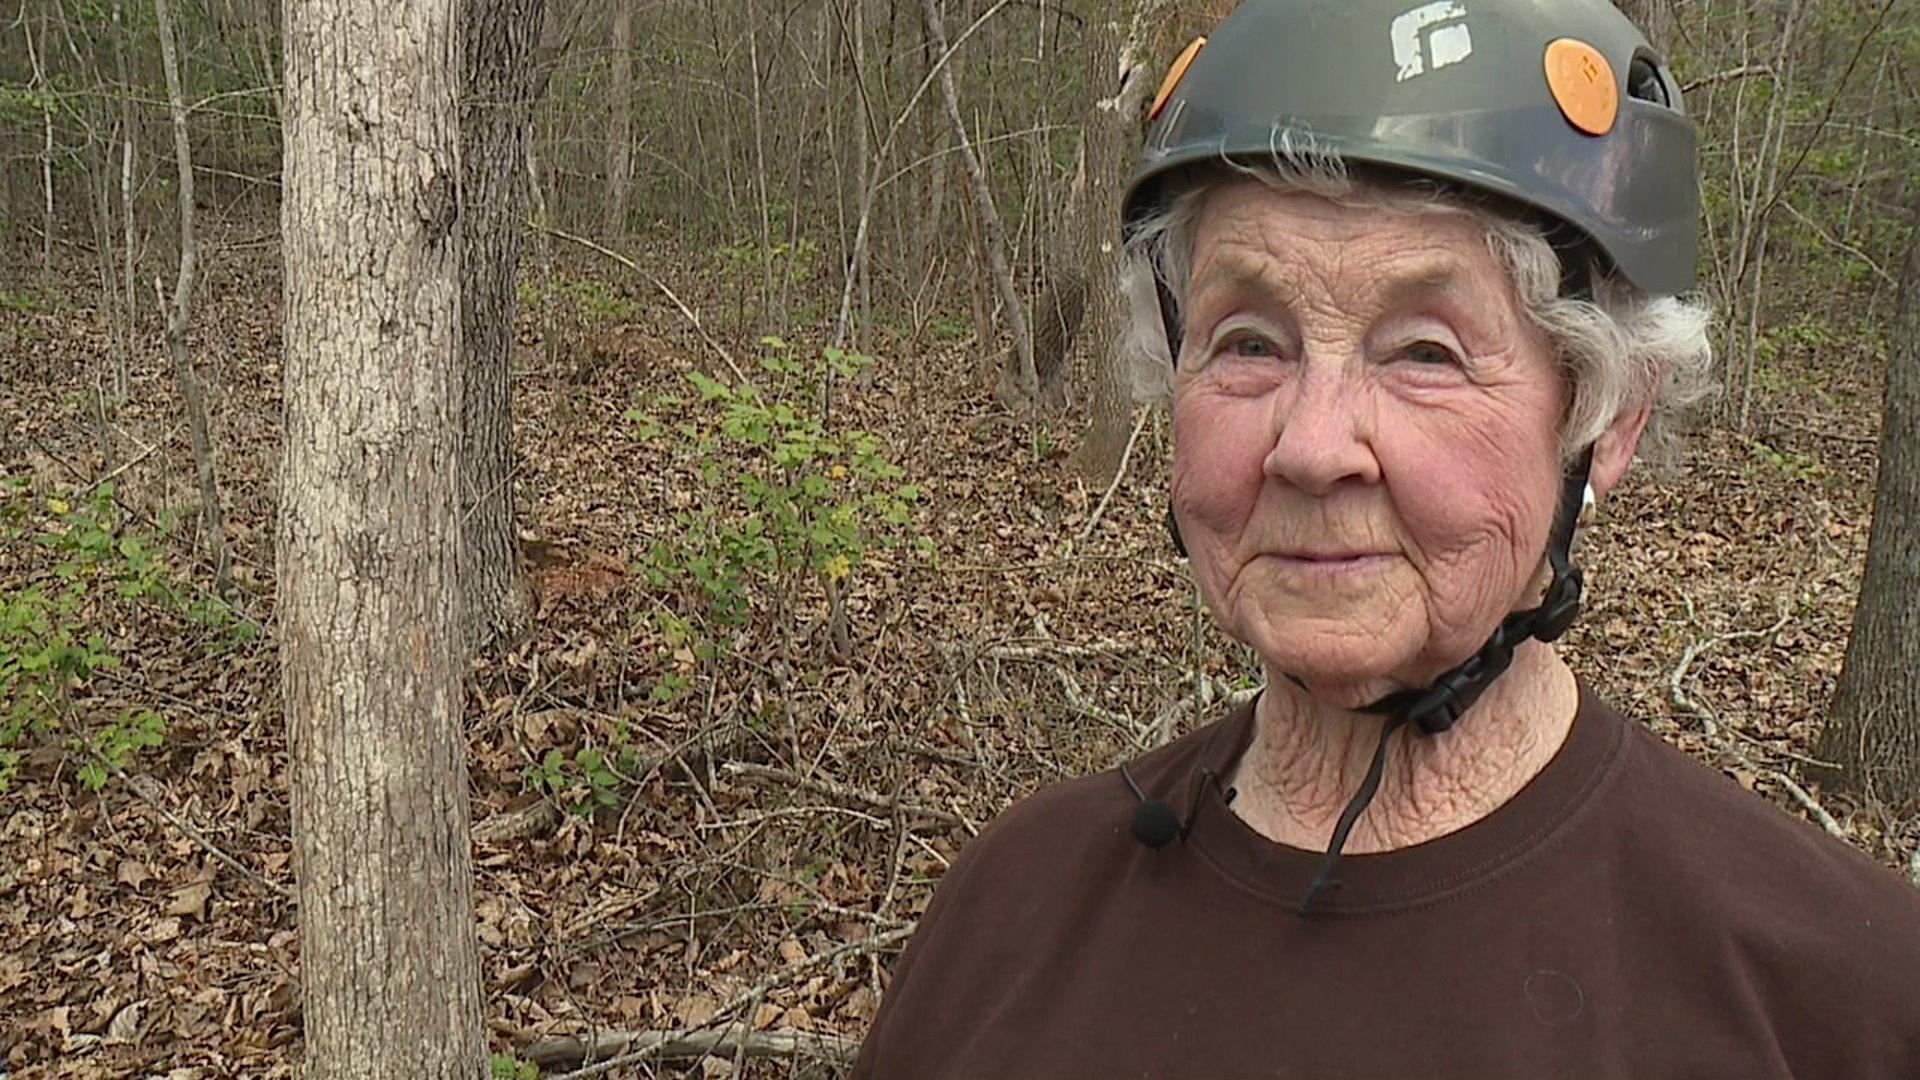 91-Year-Old Woman Goes Ziplining for First Time